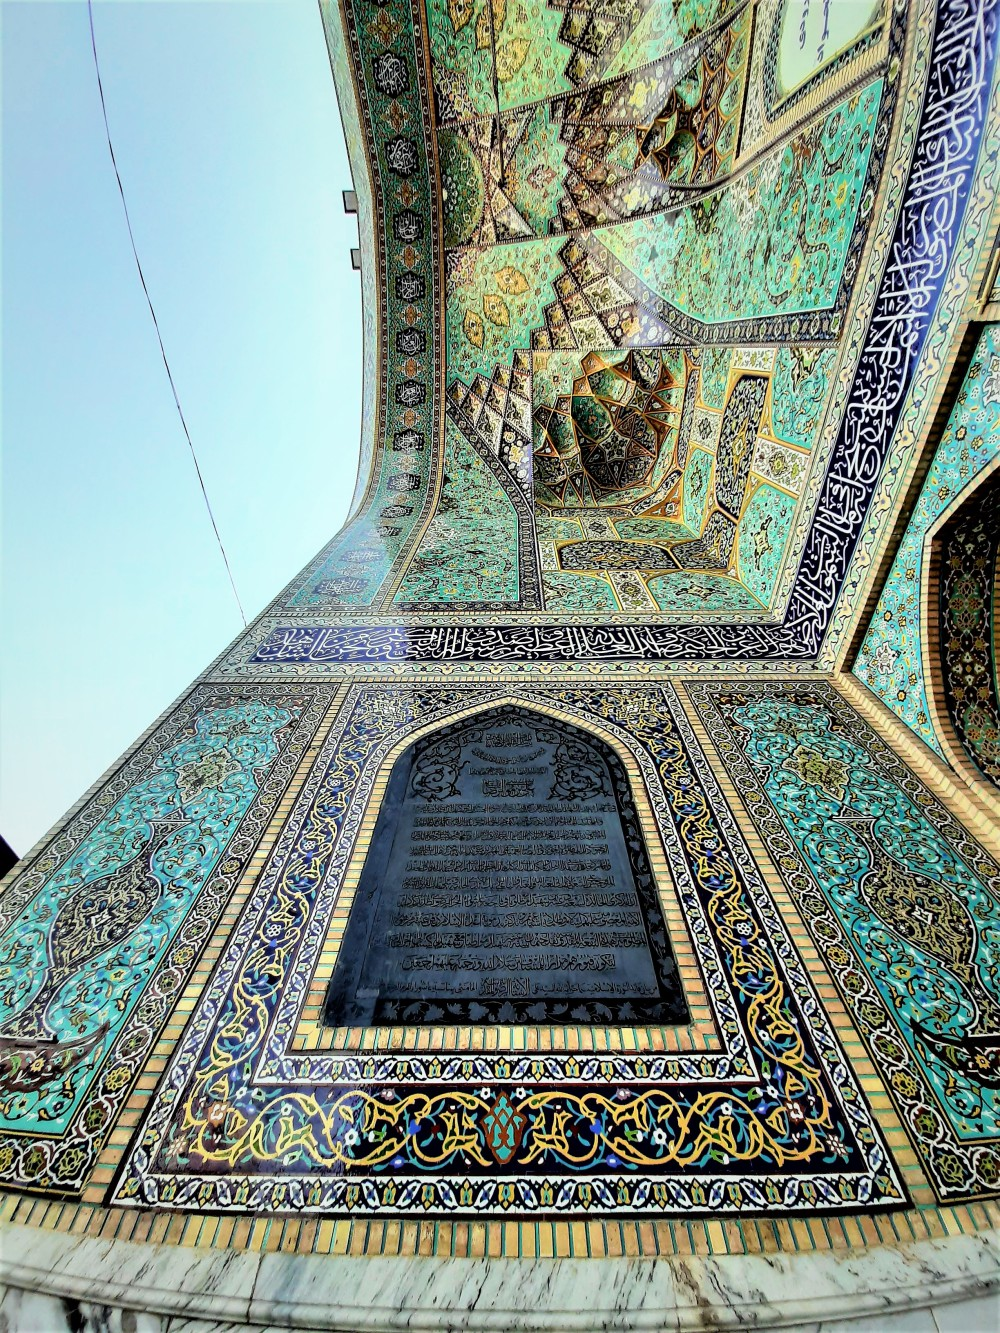 The holy shrine of Imam Reza pbuh